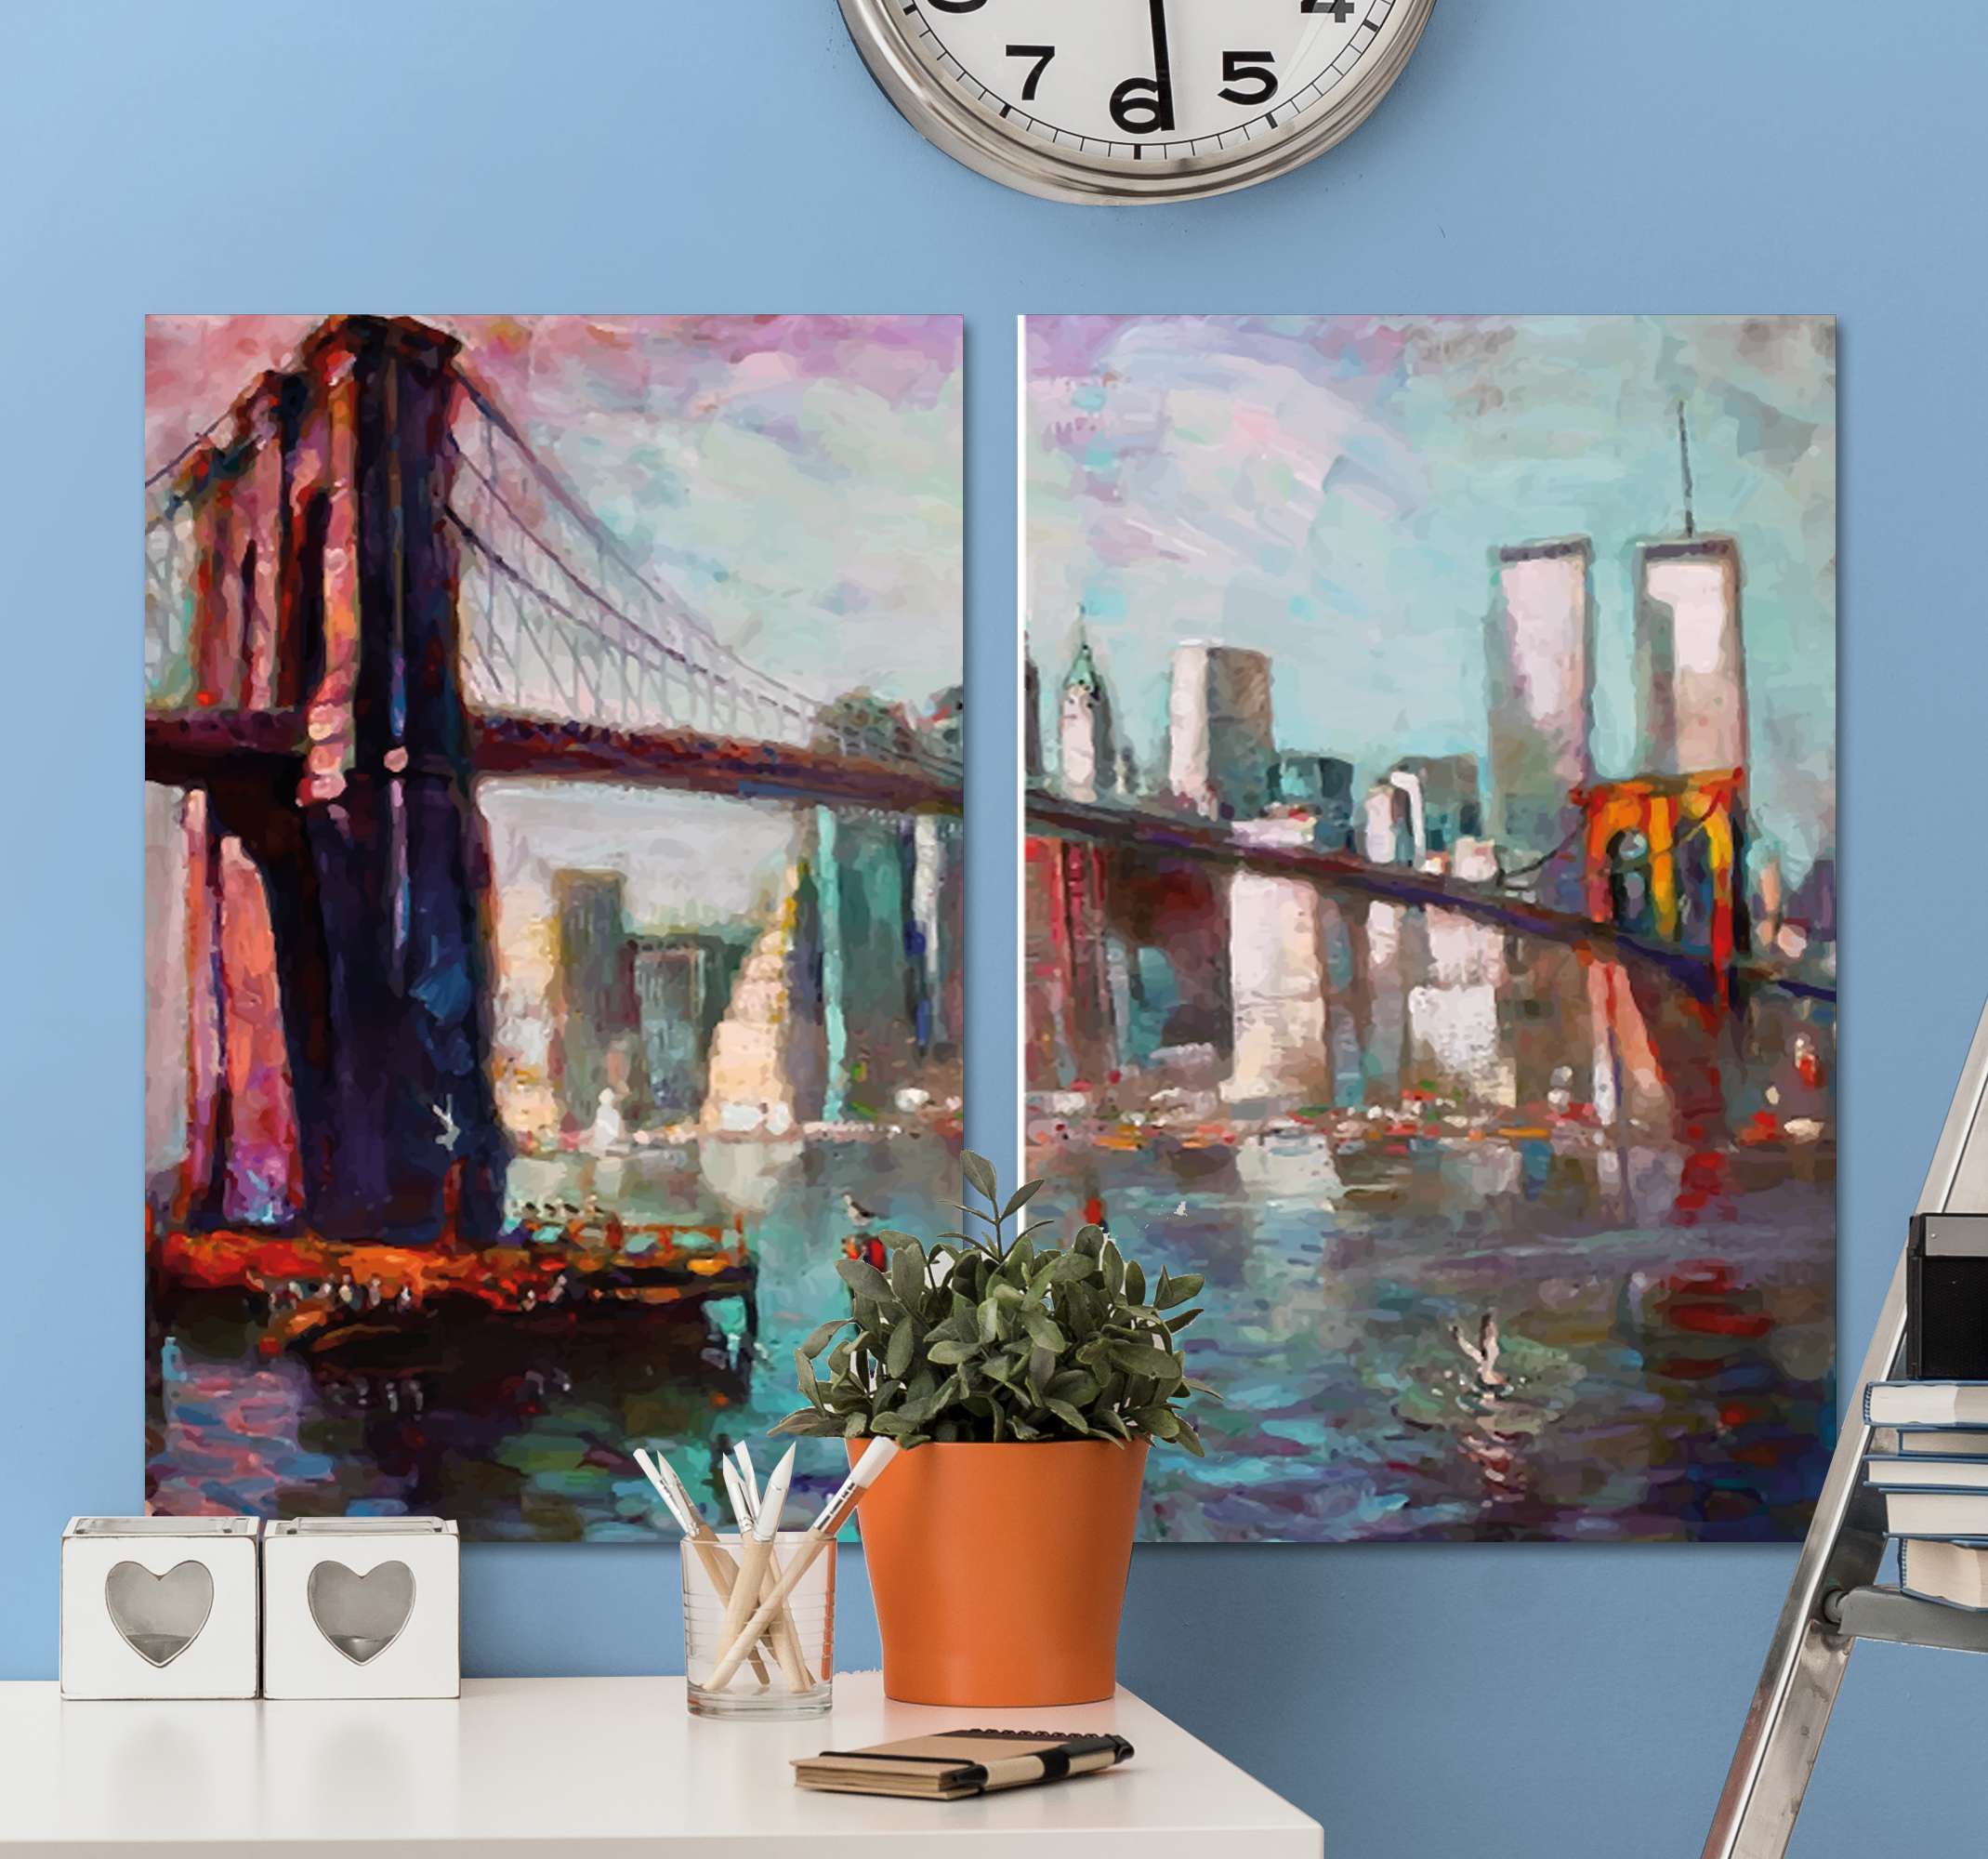 TenStickers. Canvas schilderen San Francisco skyline. Prachtige San Francisco skyline canvas schilder met de iconische golden gate brug! Gemakkelijk aan te brengen en te verwijderen wanneer dat nodig is.